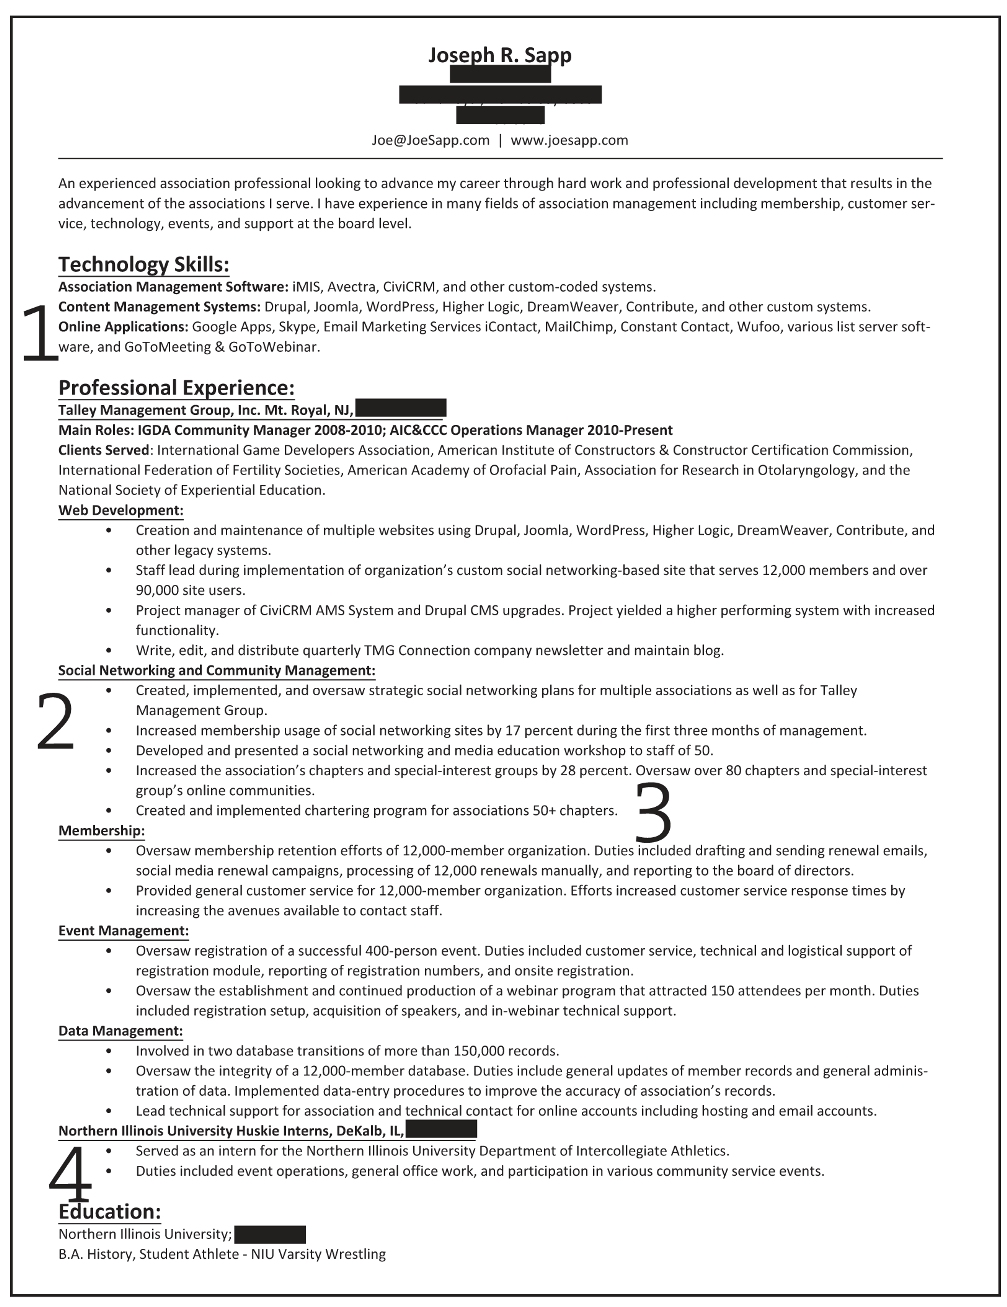 marketing professional resume summary